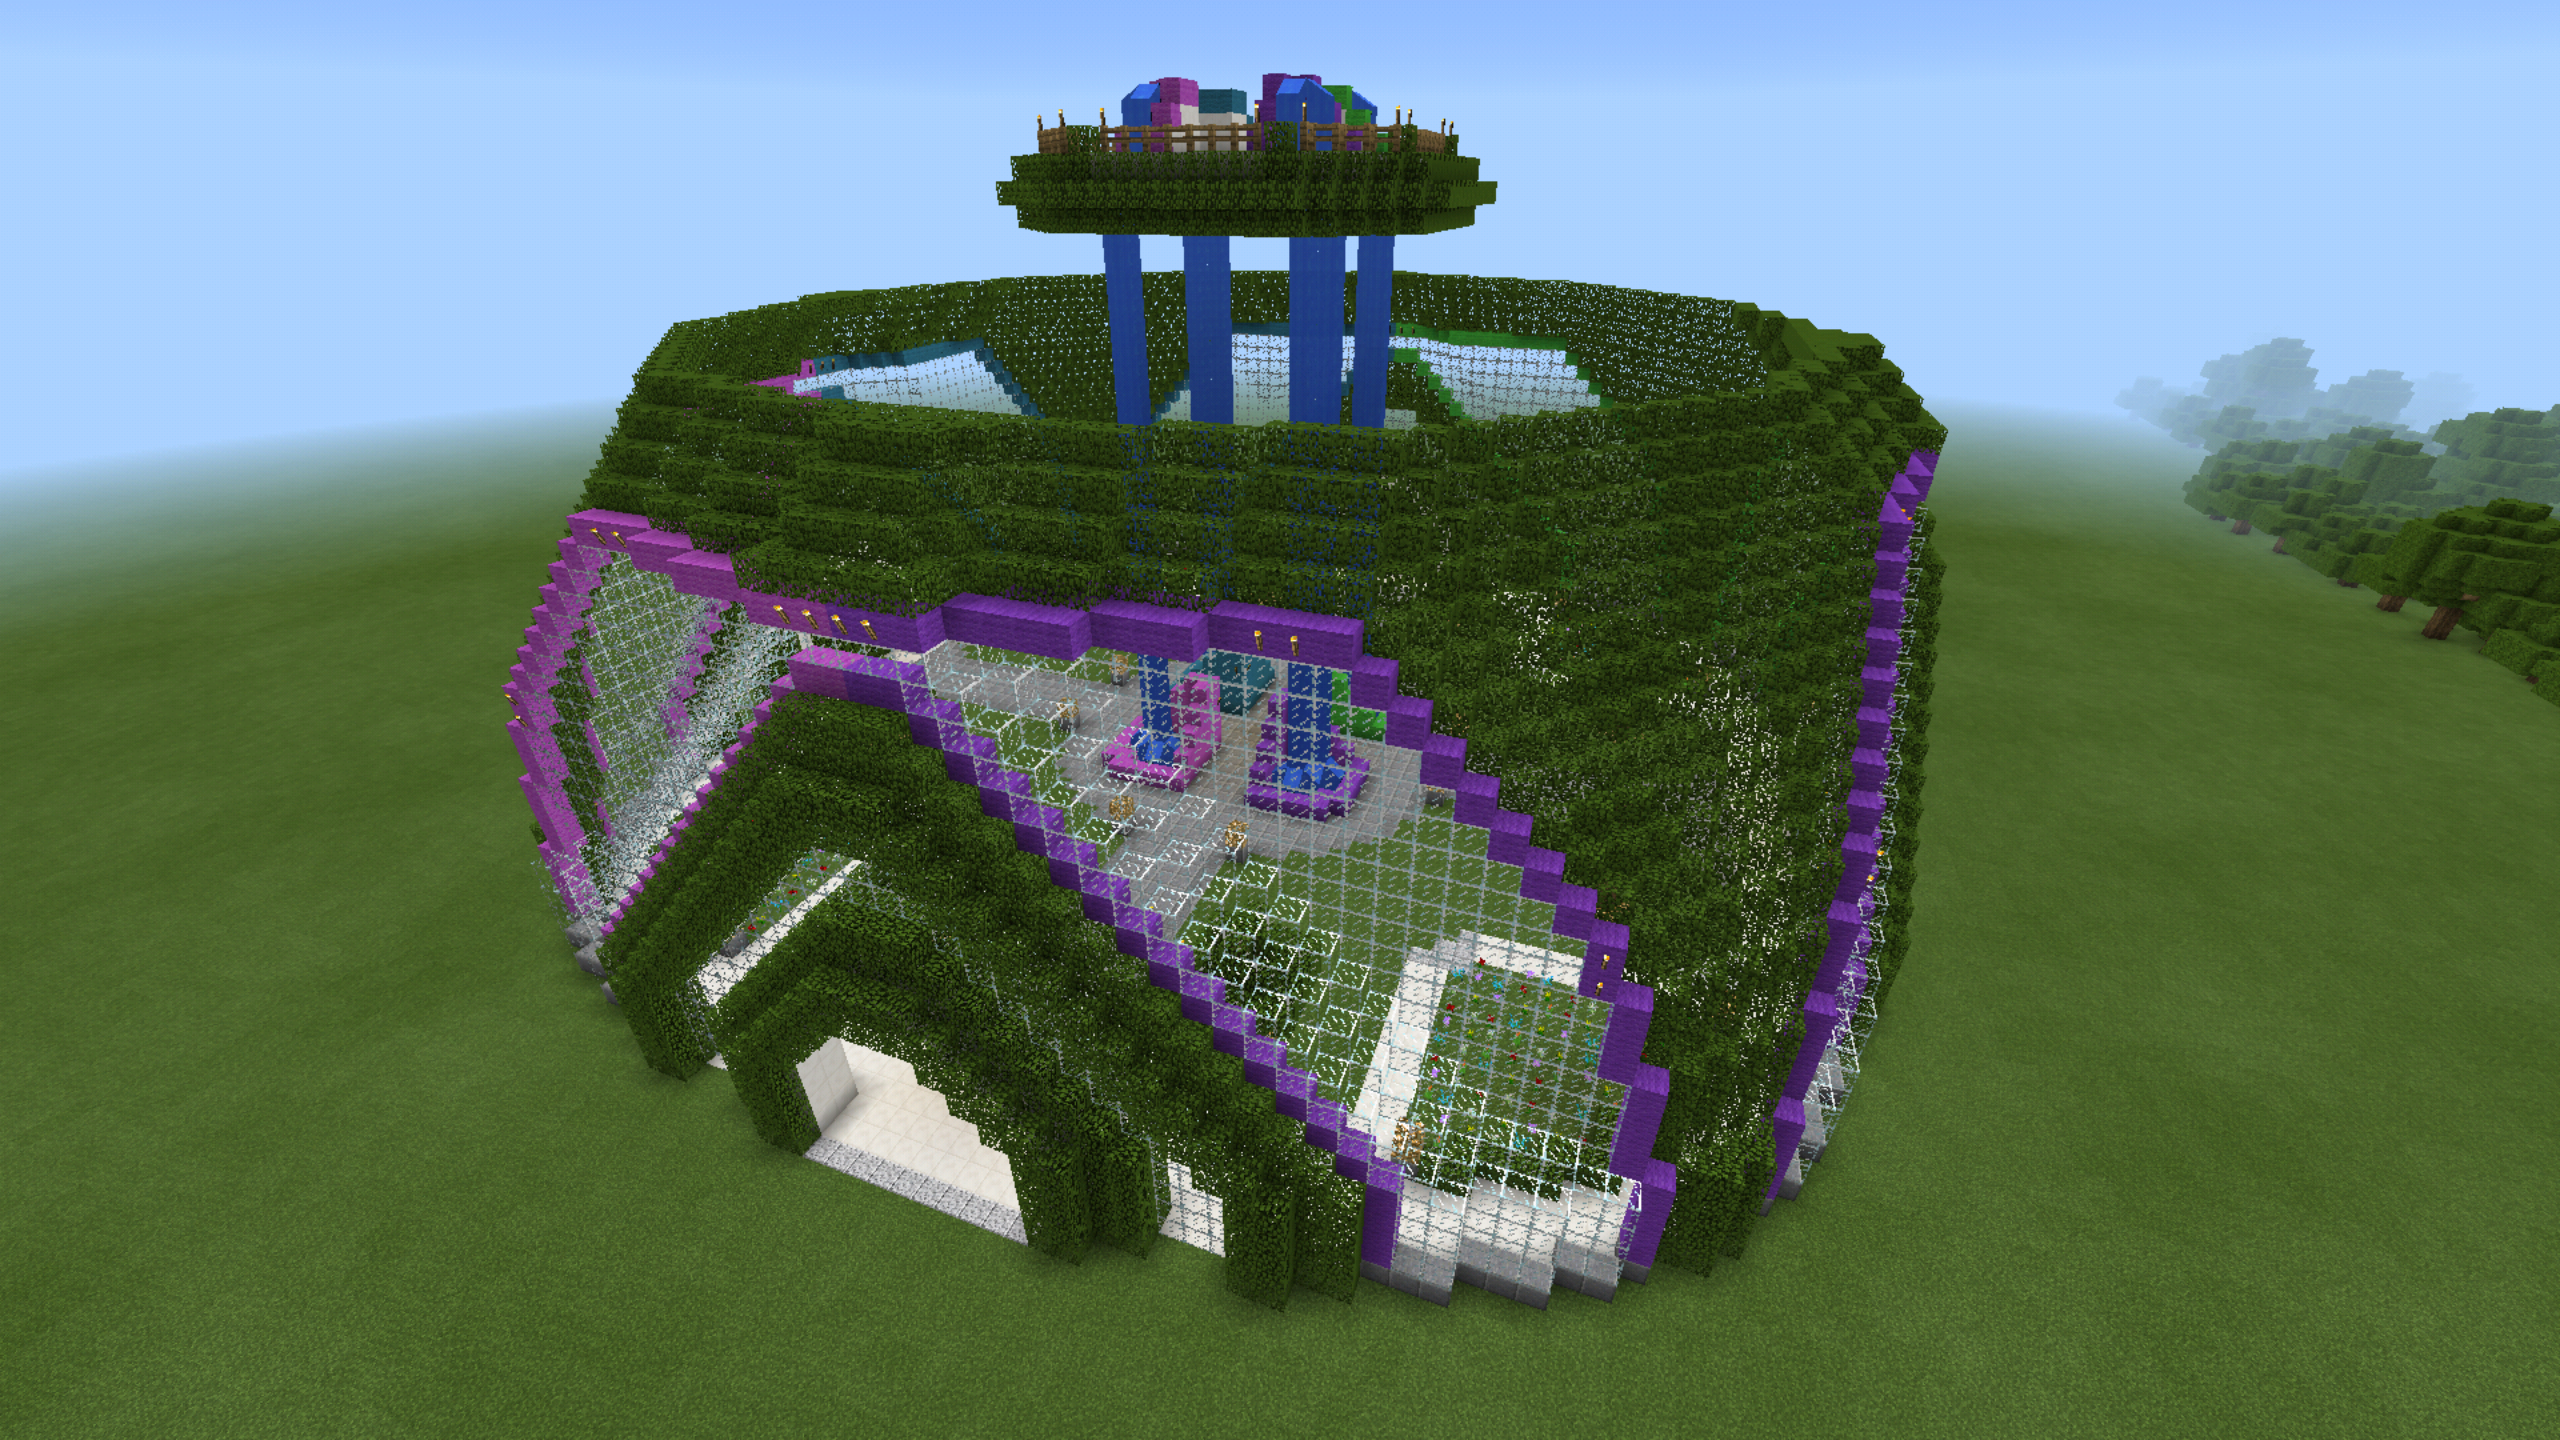 minecraft garden dome waterfall neon glass green house planetarium creation